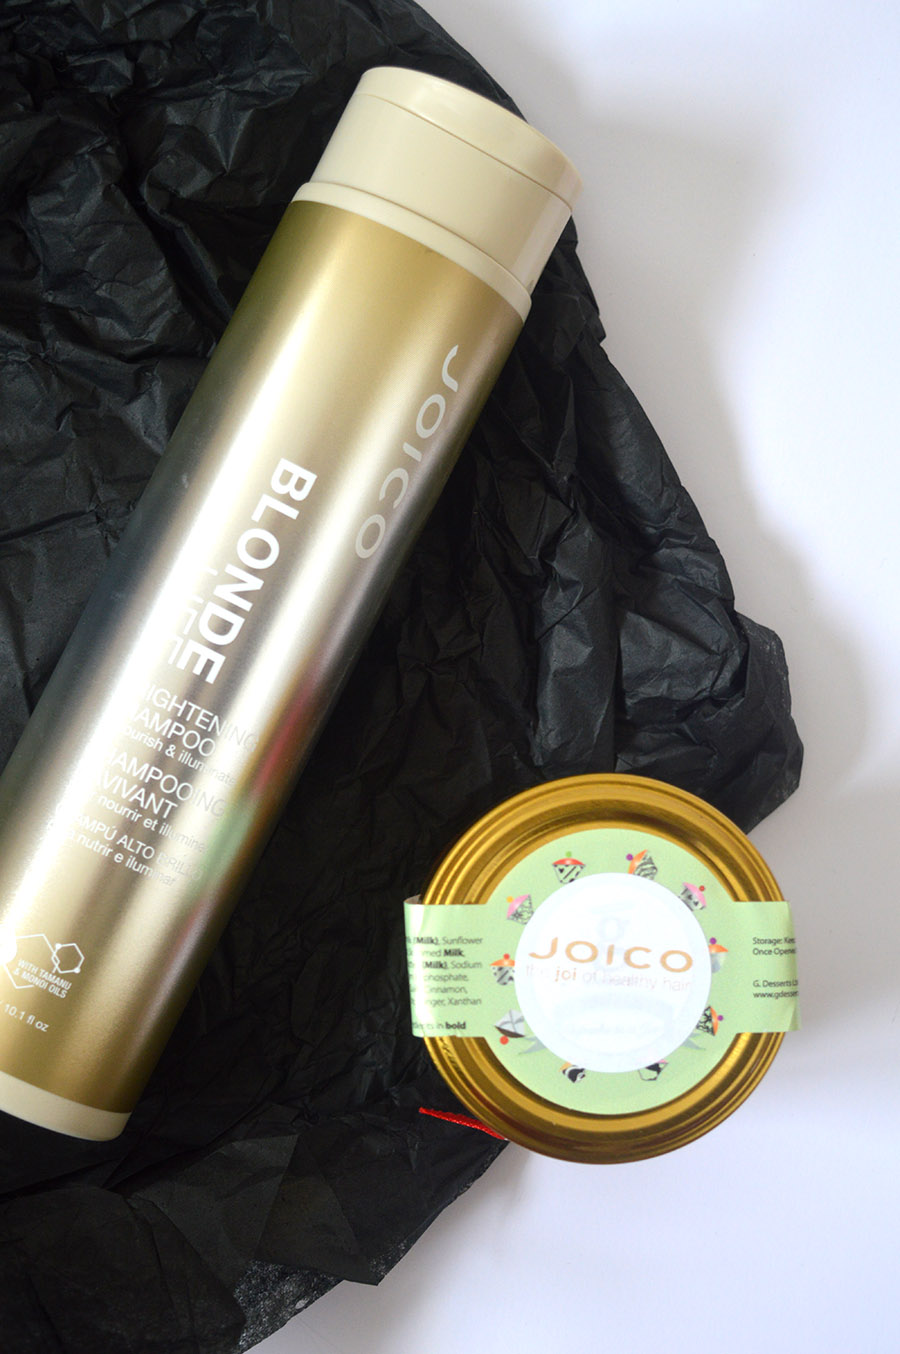 Joico Blonde Life shampoo review